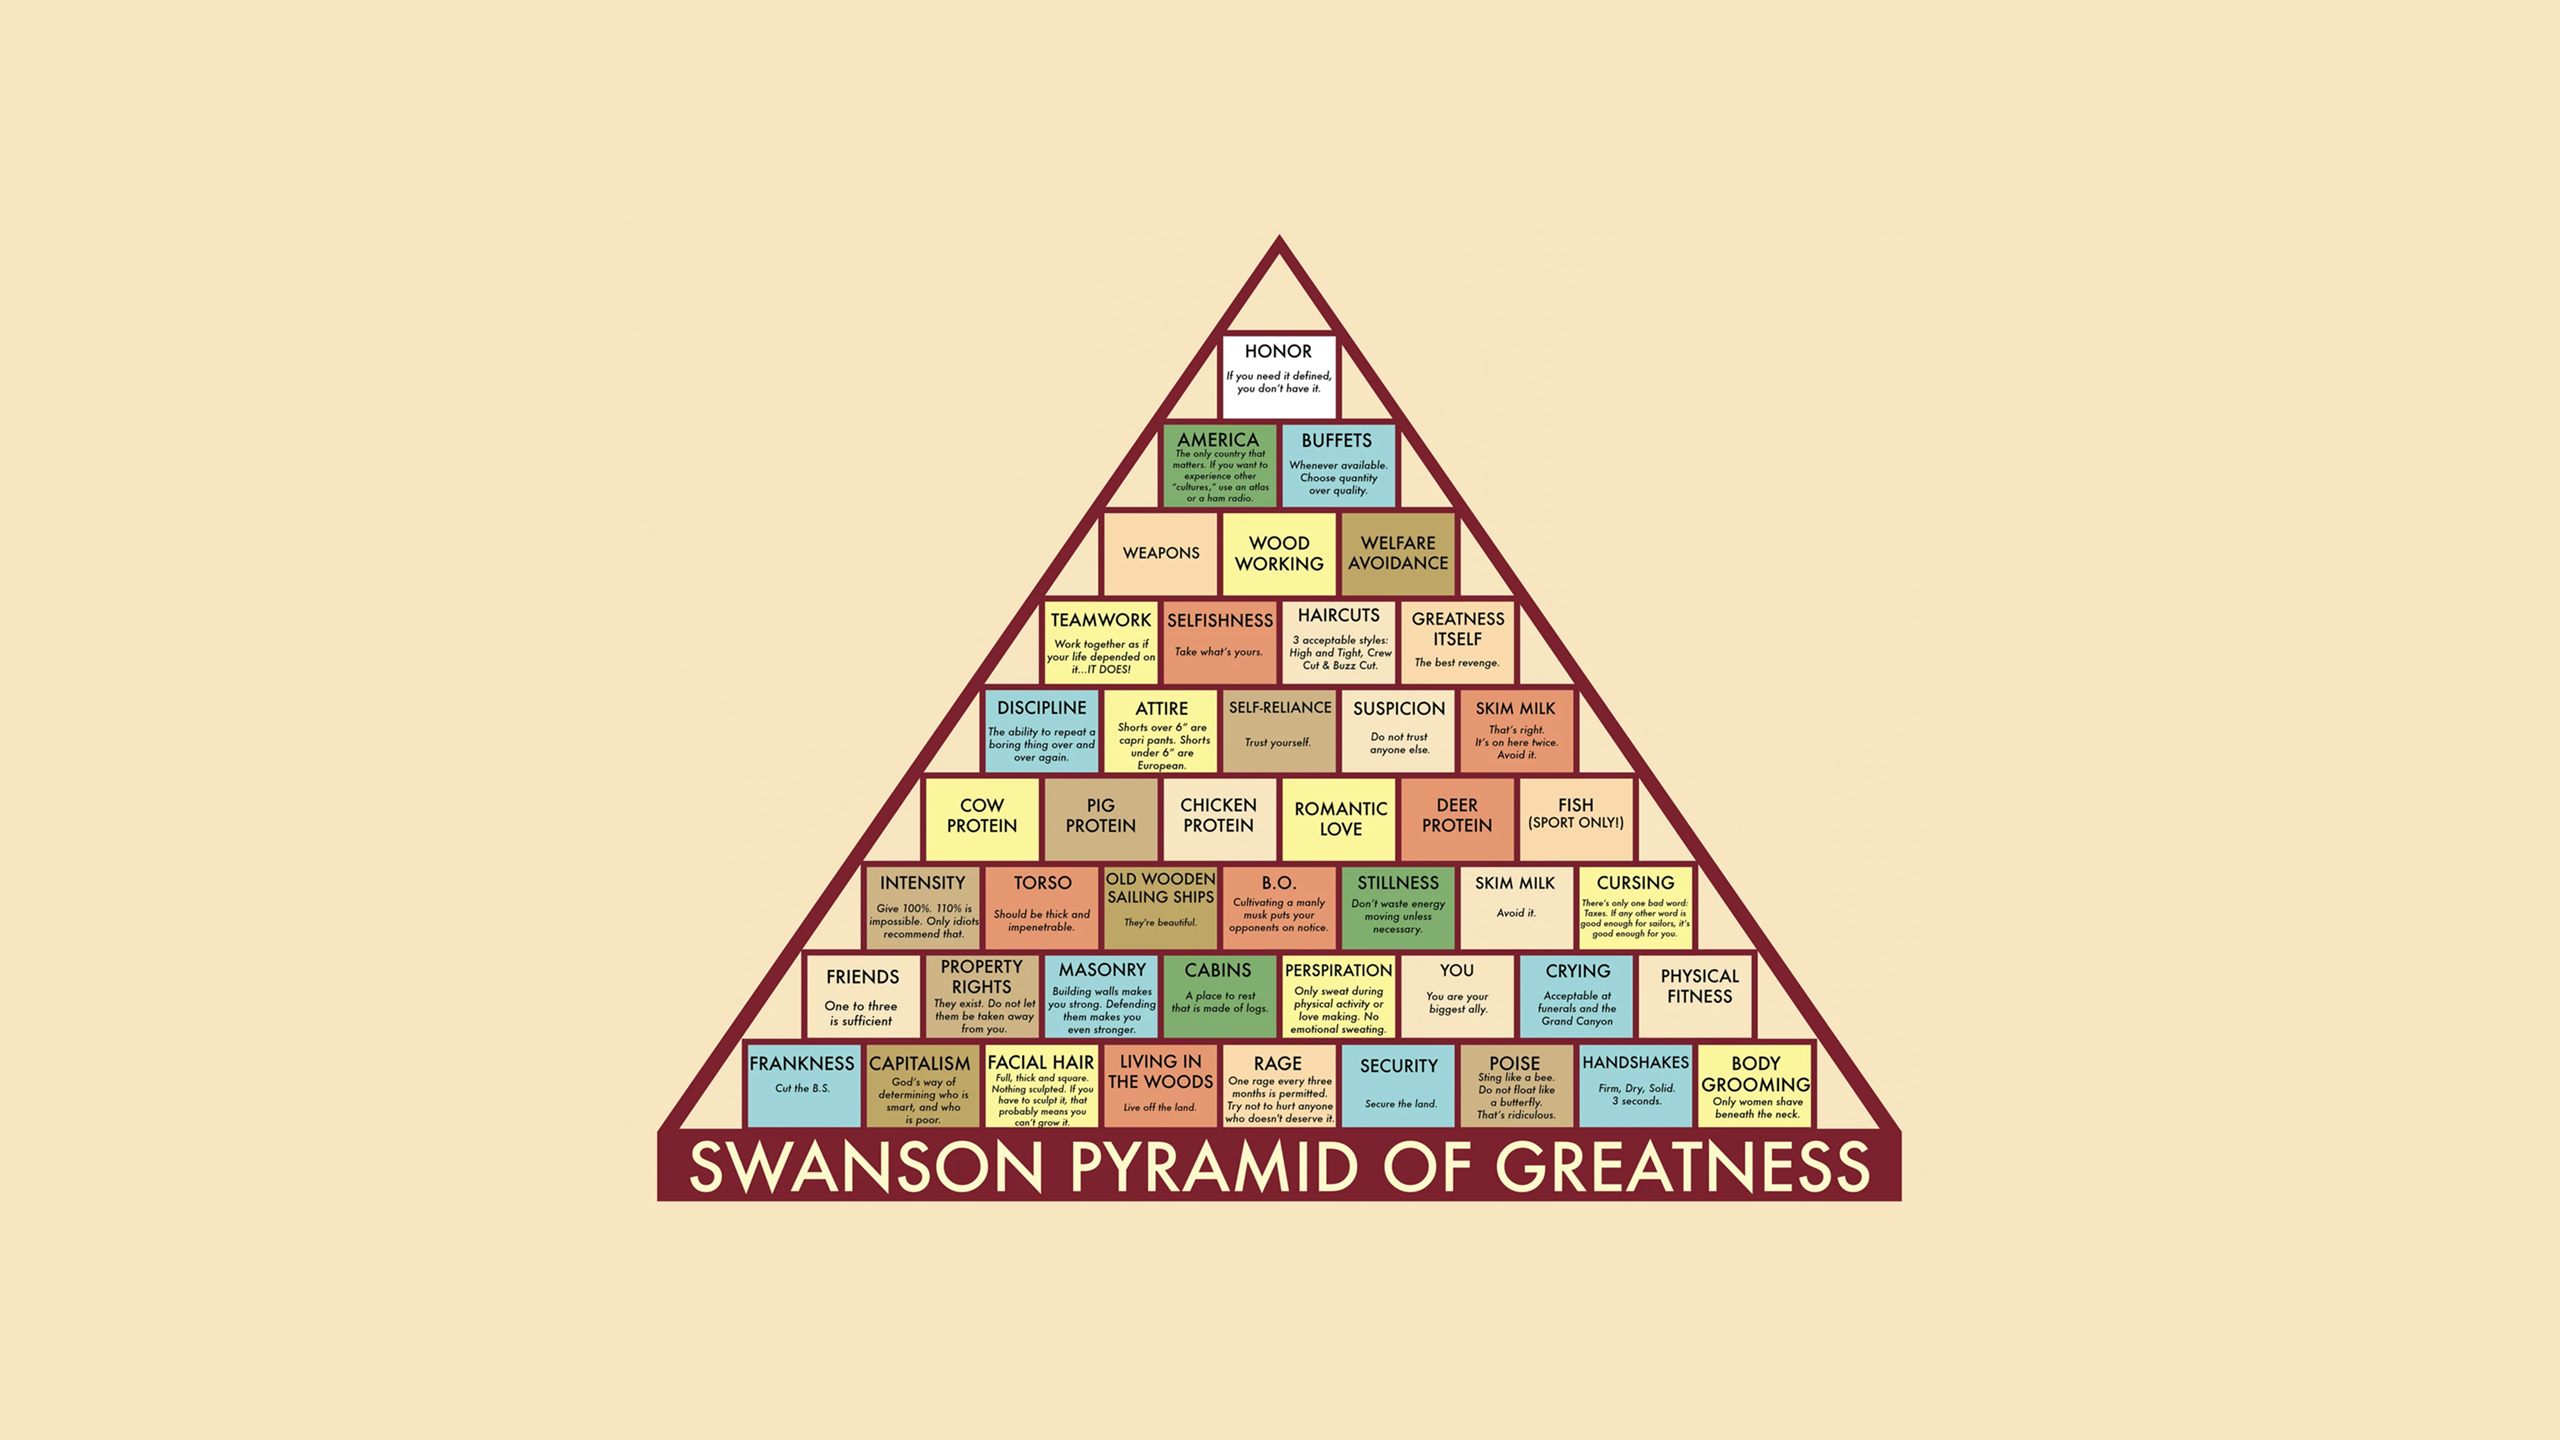 Parks & Rec - Pyramid of Greatness